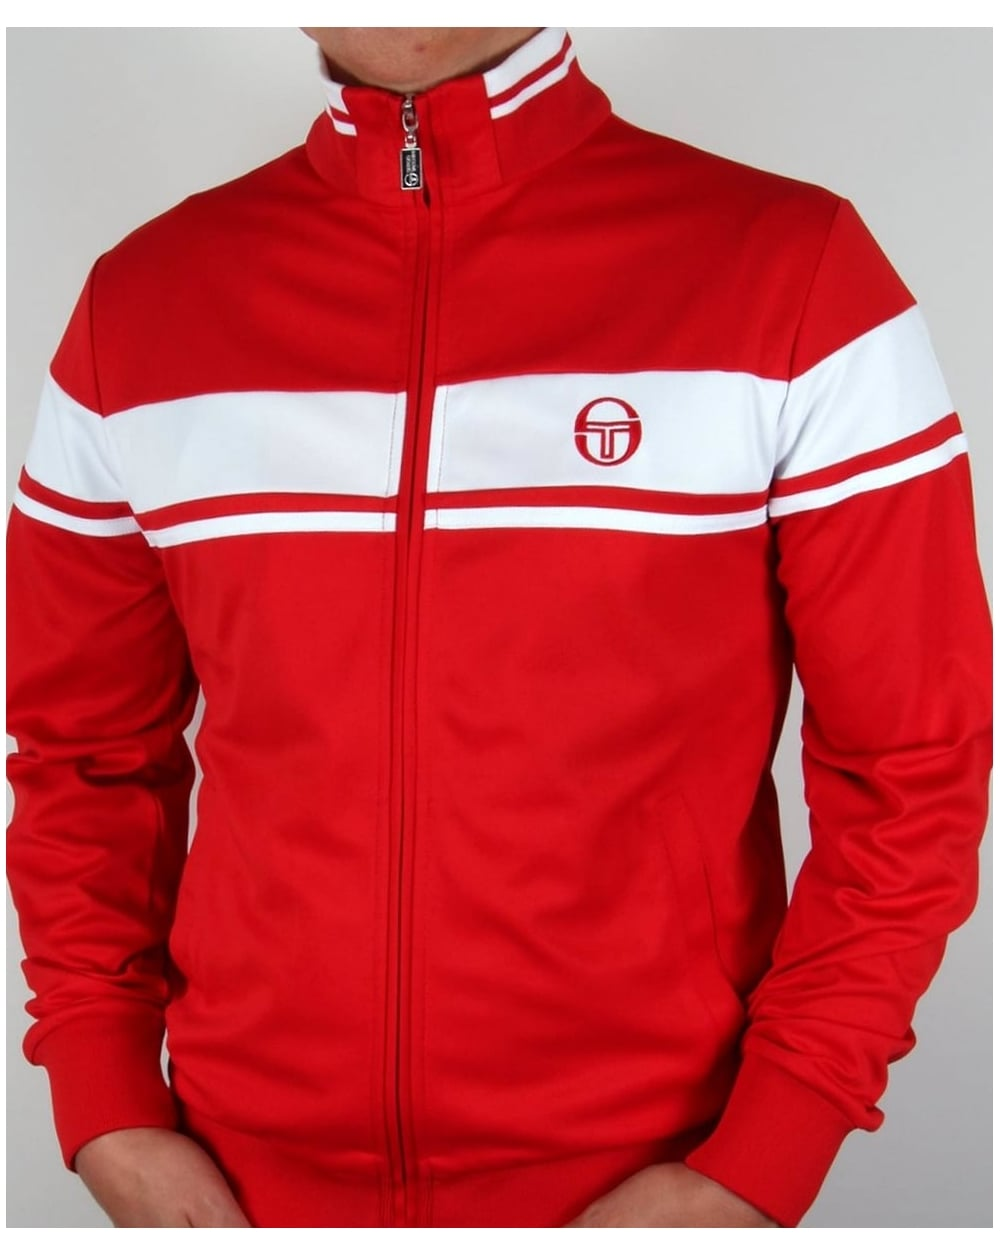 3097cec1a2d5 Sergio Tacchini Masters Track Top Red/White,tracksuit,jacket,mens